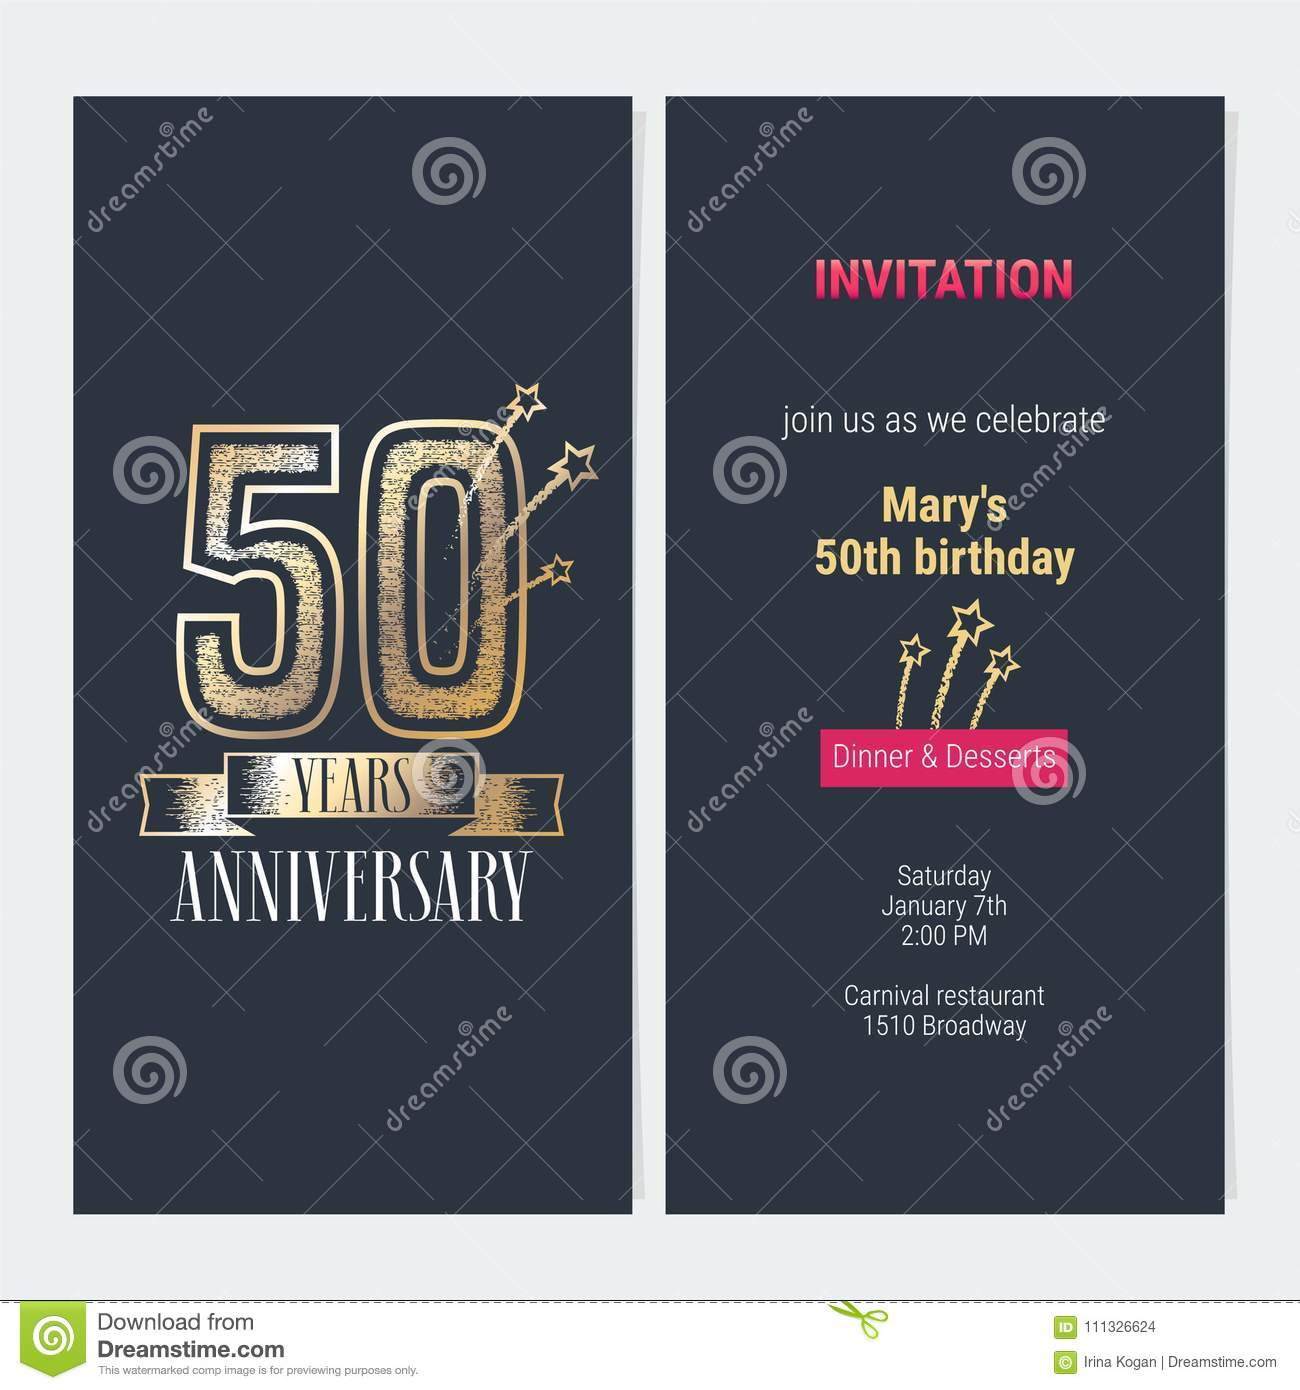 50 years anniversary invitation vector stock vector illustration download 50 years anniversary invitation vector stock vector illustration of flyer greeting 111326624 stopboris Gallery